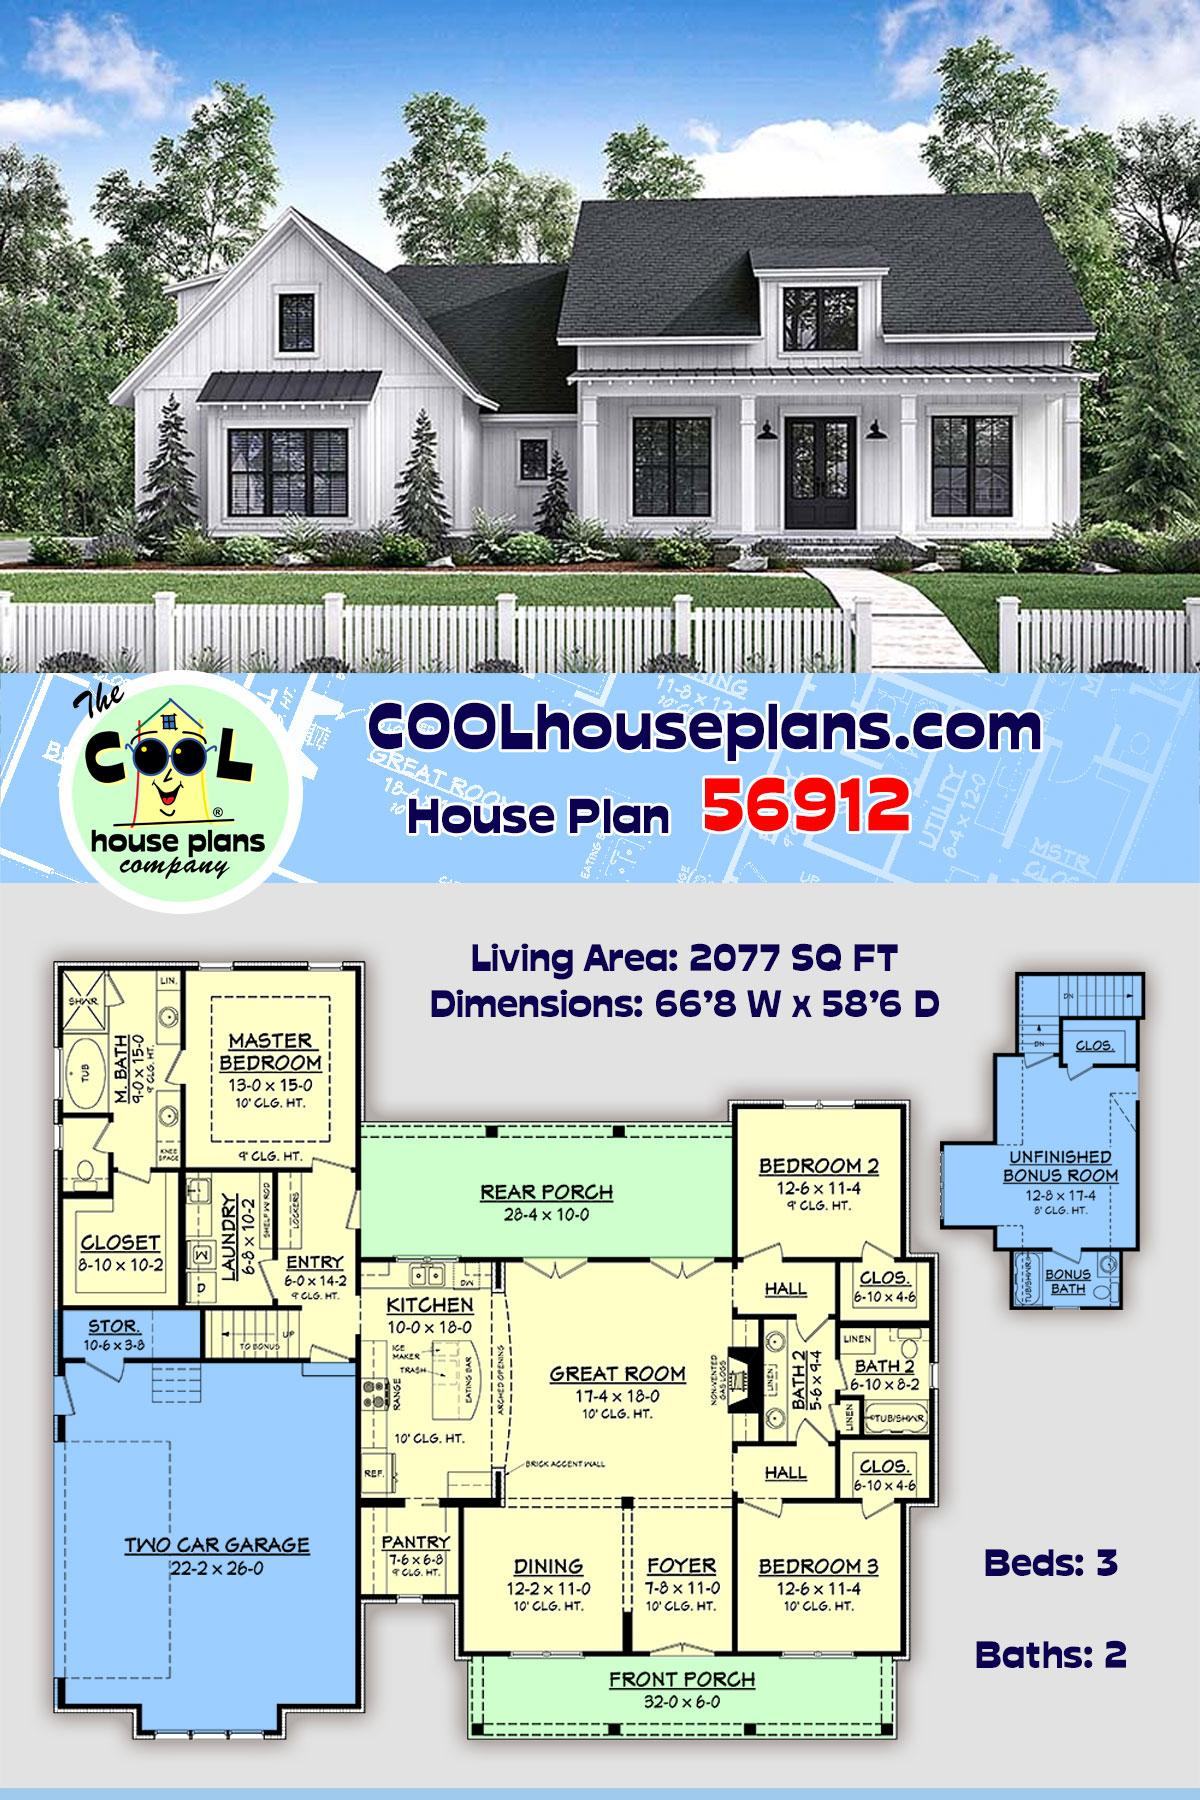 Country, Craftsman, Farmhouse House Plan 56912 with 3 Beds, 2 Baths, 2 Car Garage